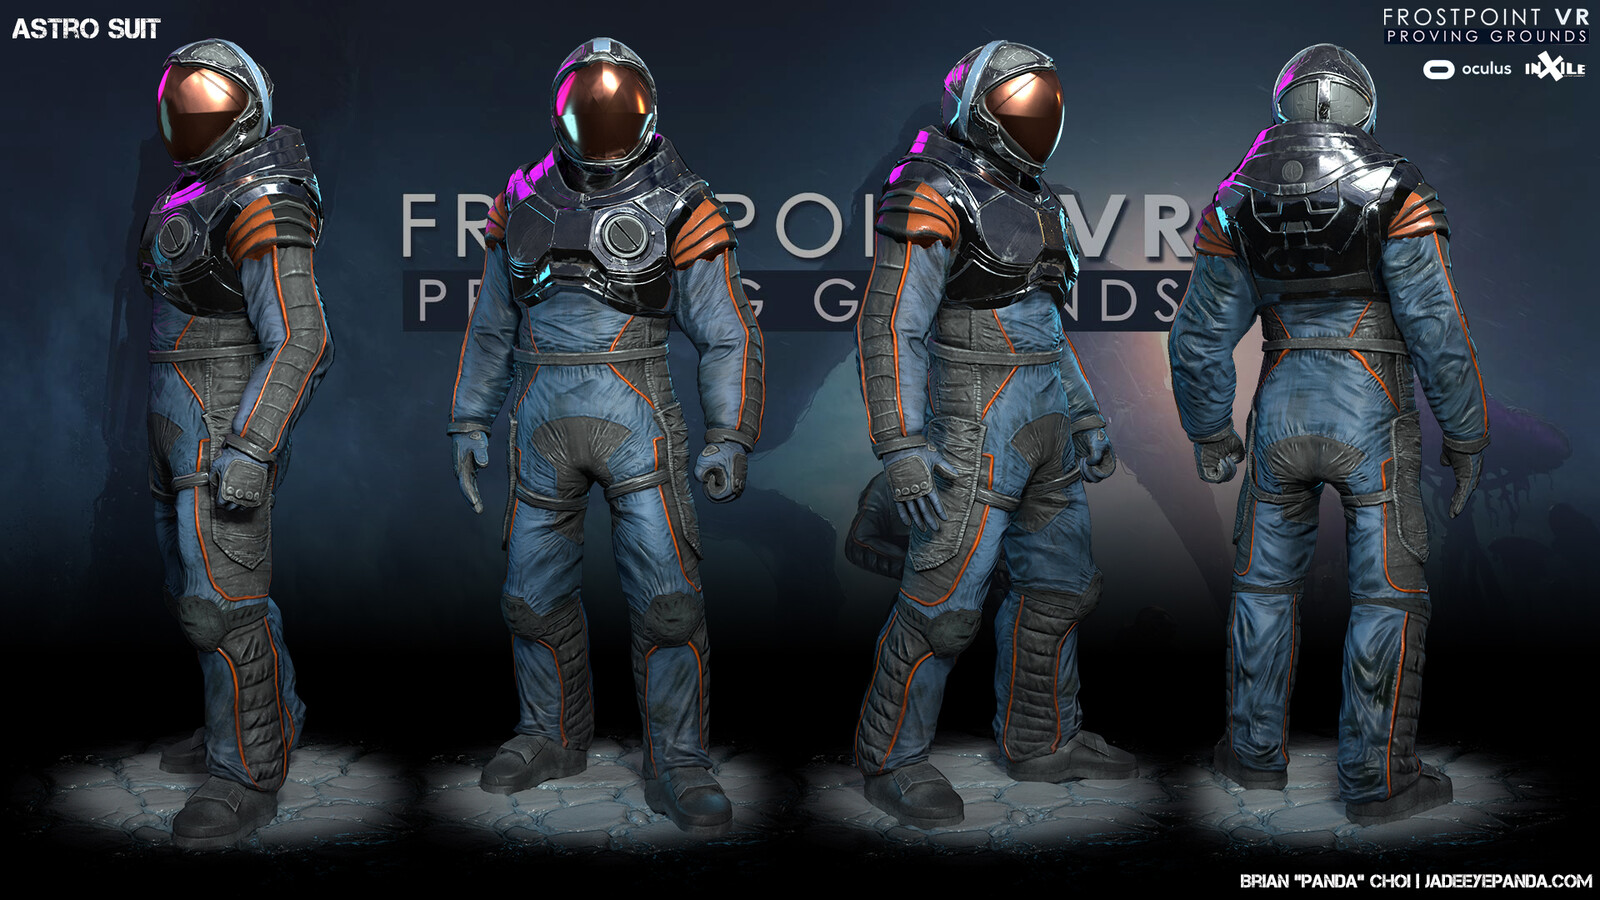 Integration and polish/edits of sculpt, model, and textures by Adam Schuman and me. Original asset by Sergio Santos